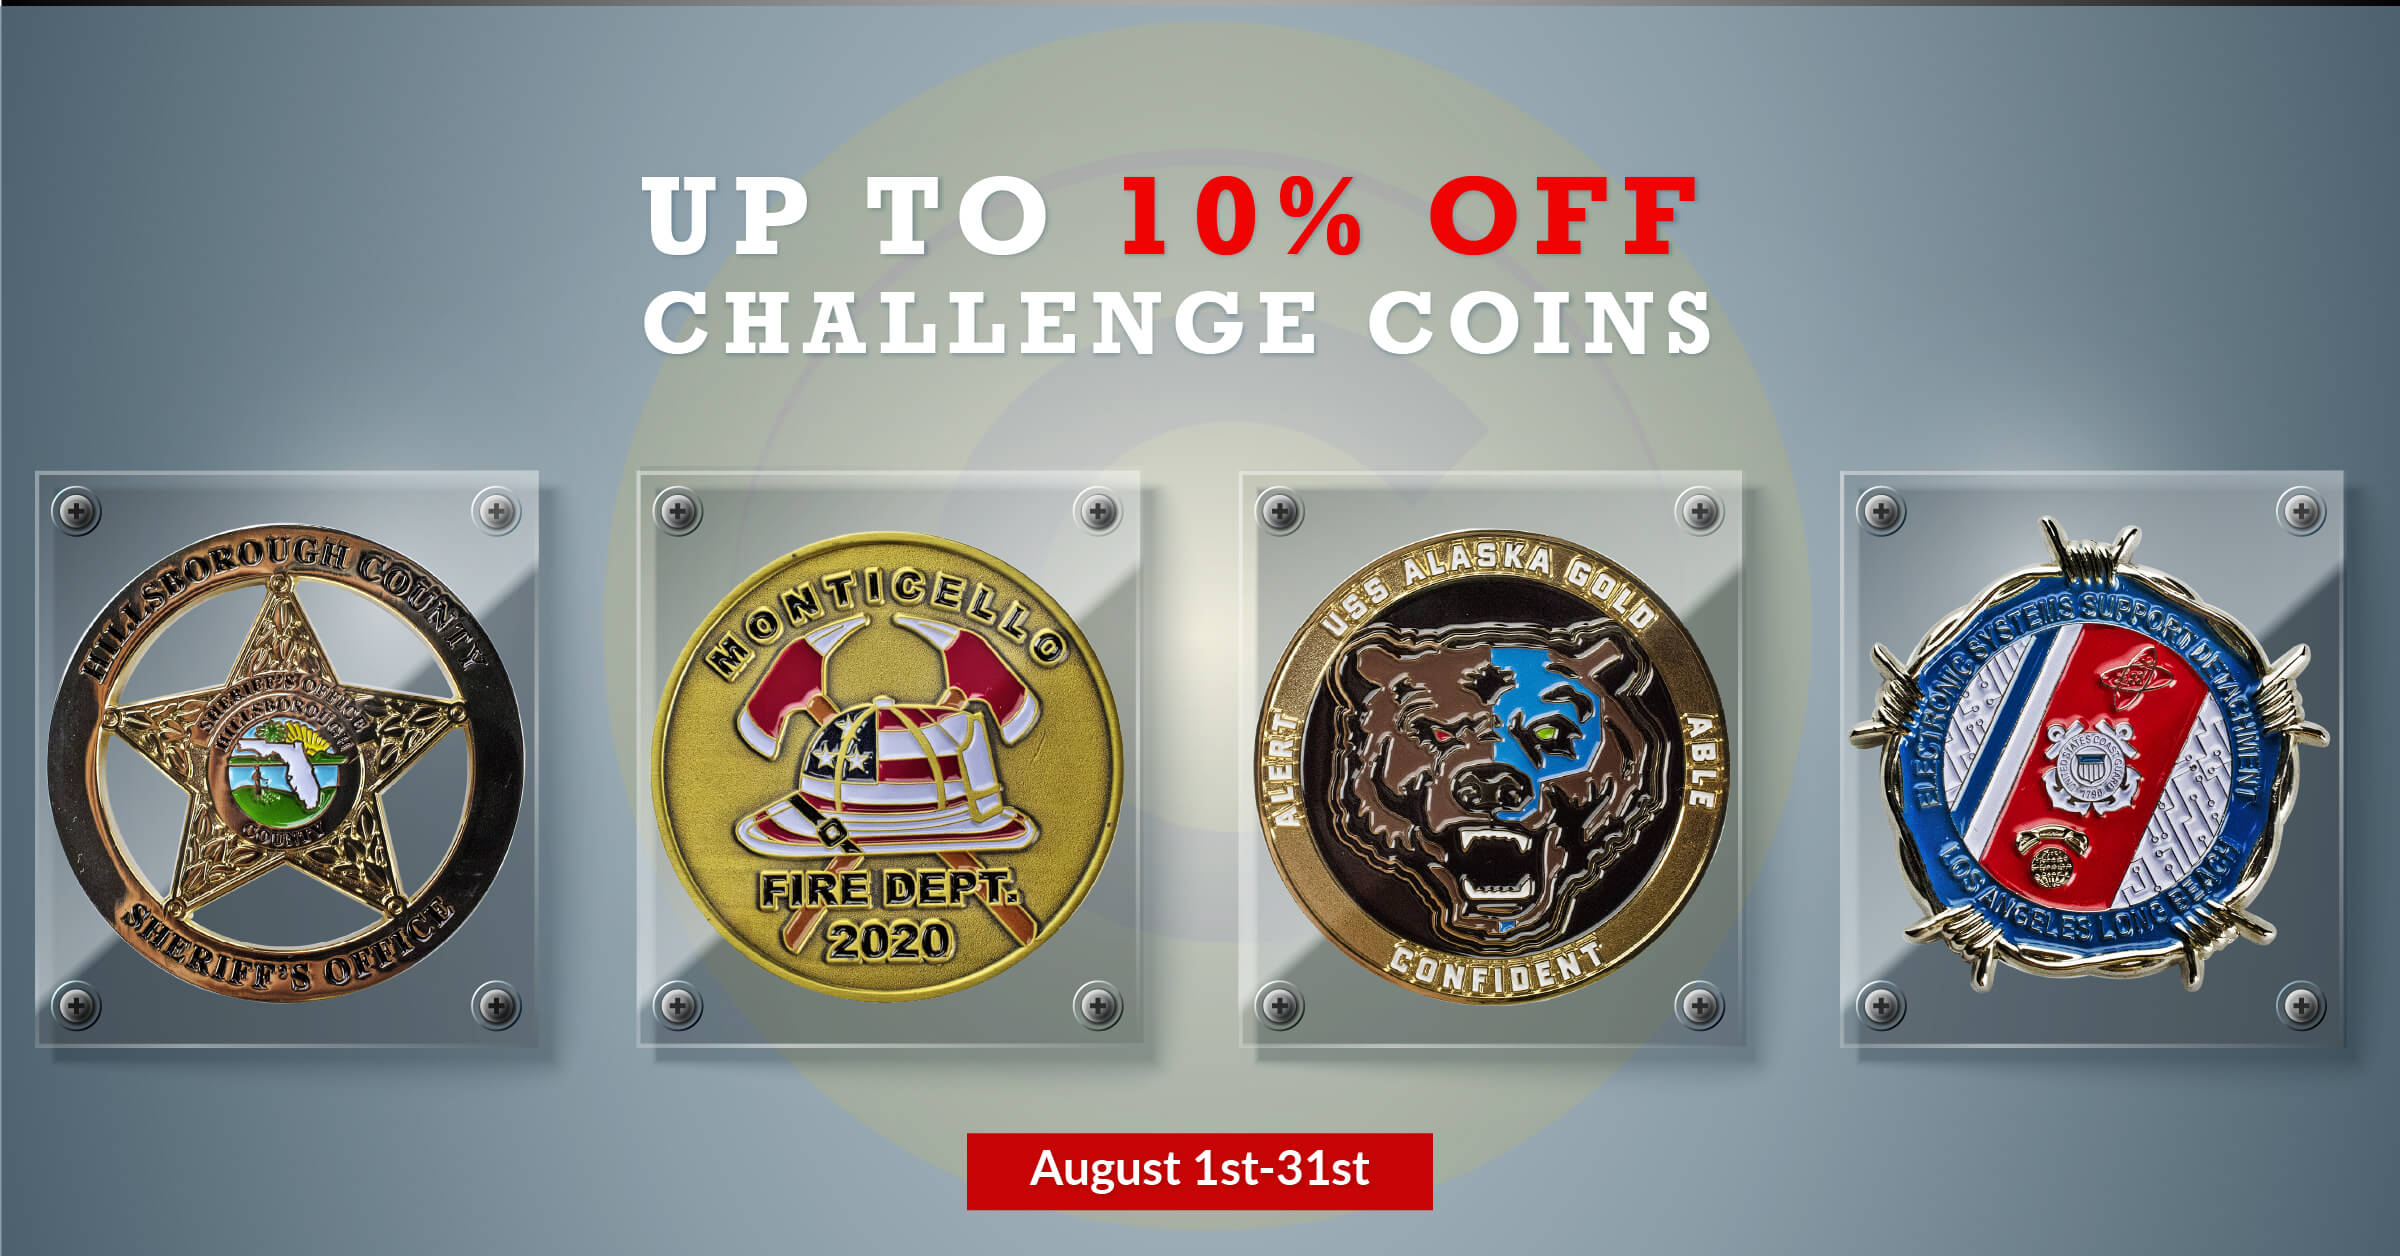 New Customers Save on Challenge Coins in August